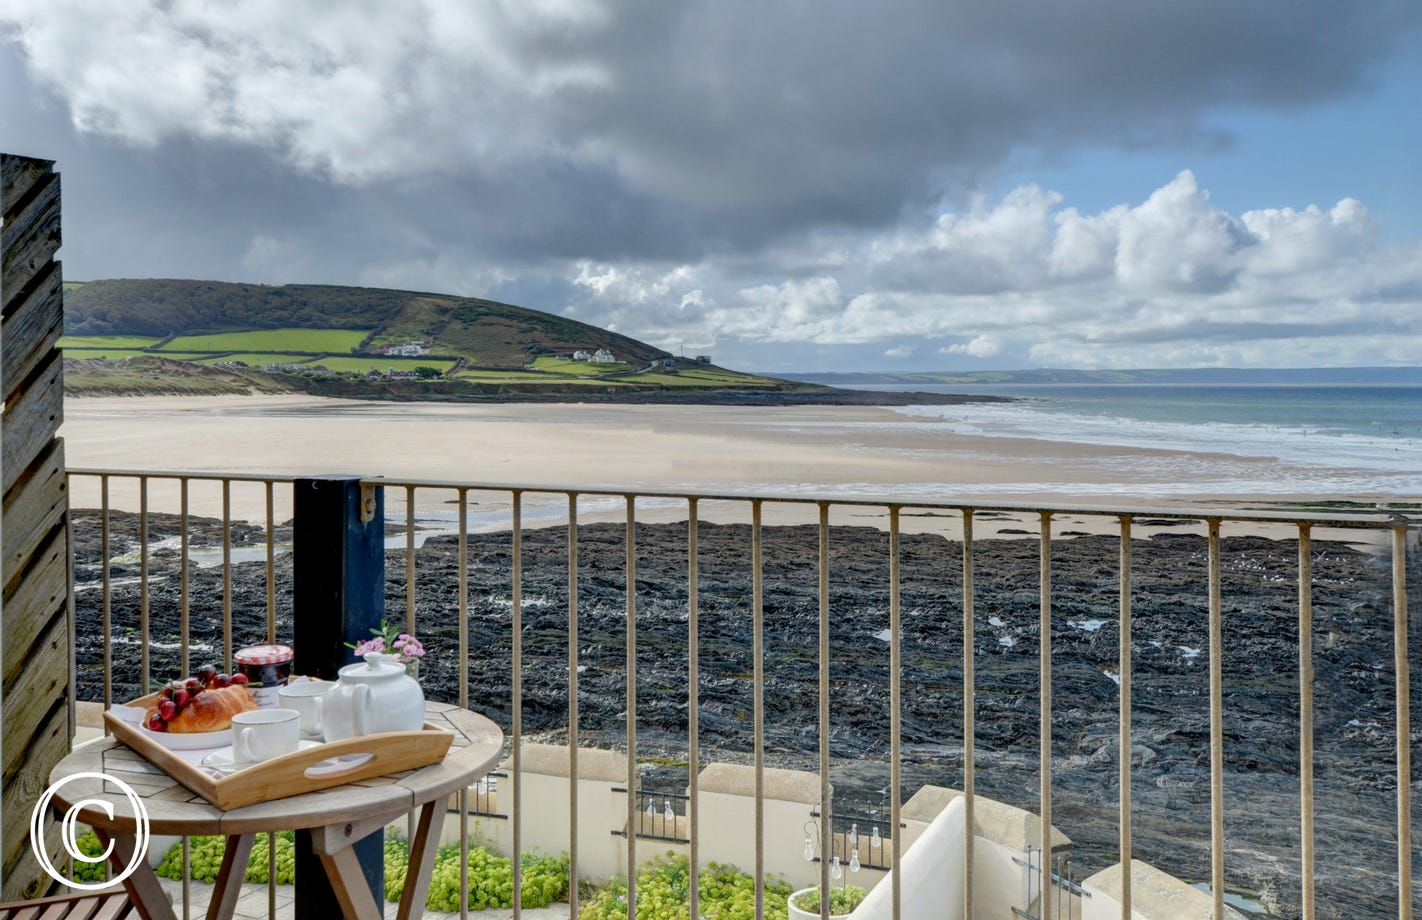 Sea views surely do not get any better than from this superb home situated right on the edge of the ocean